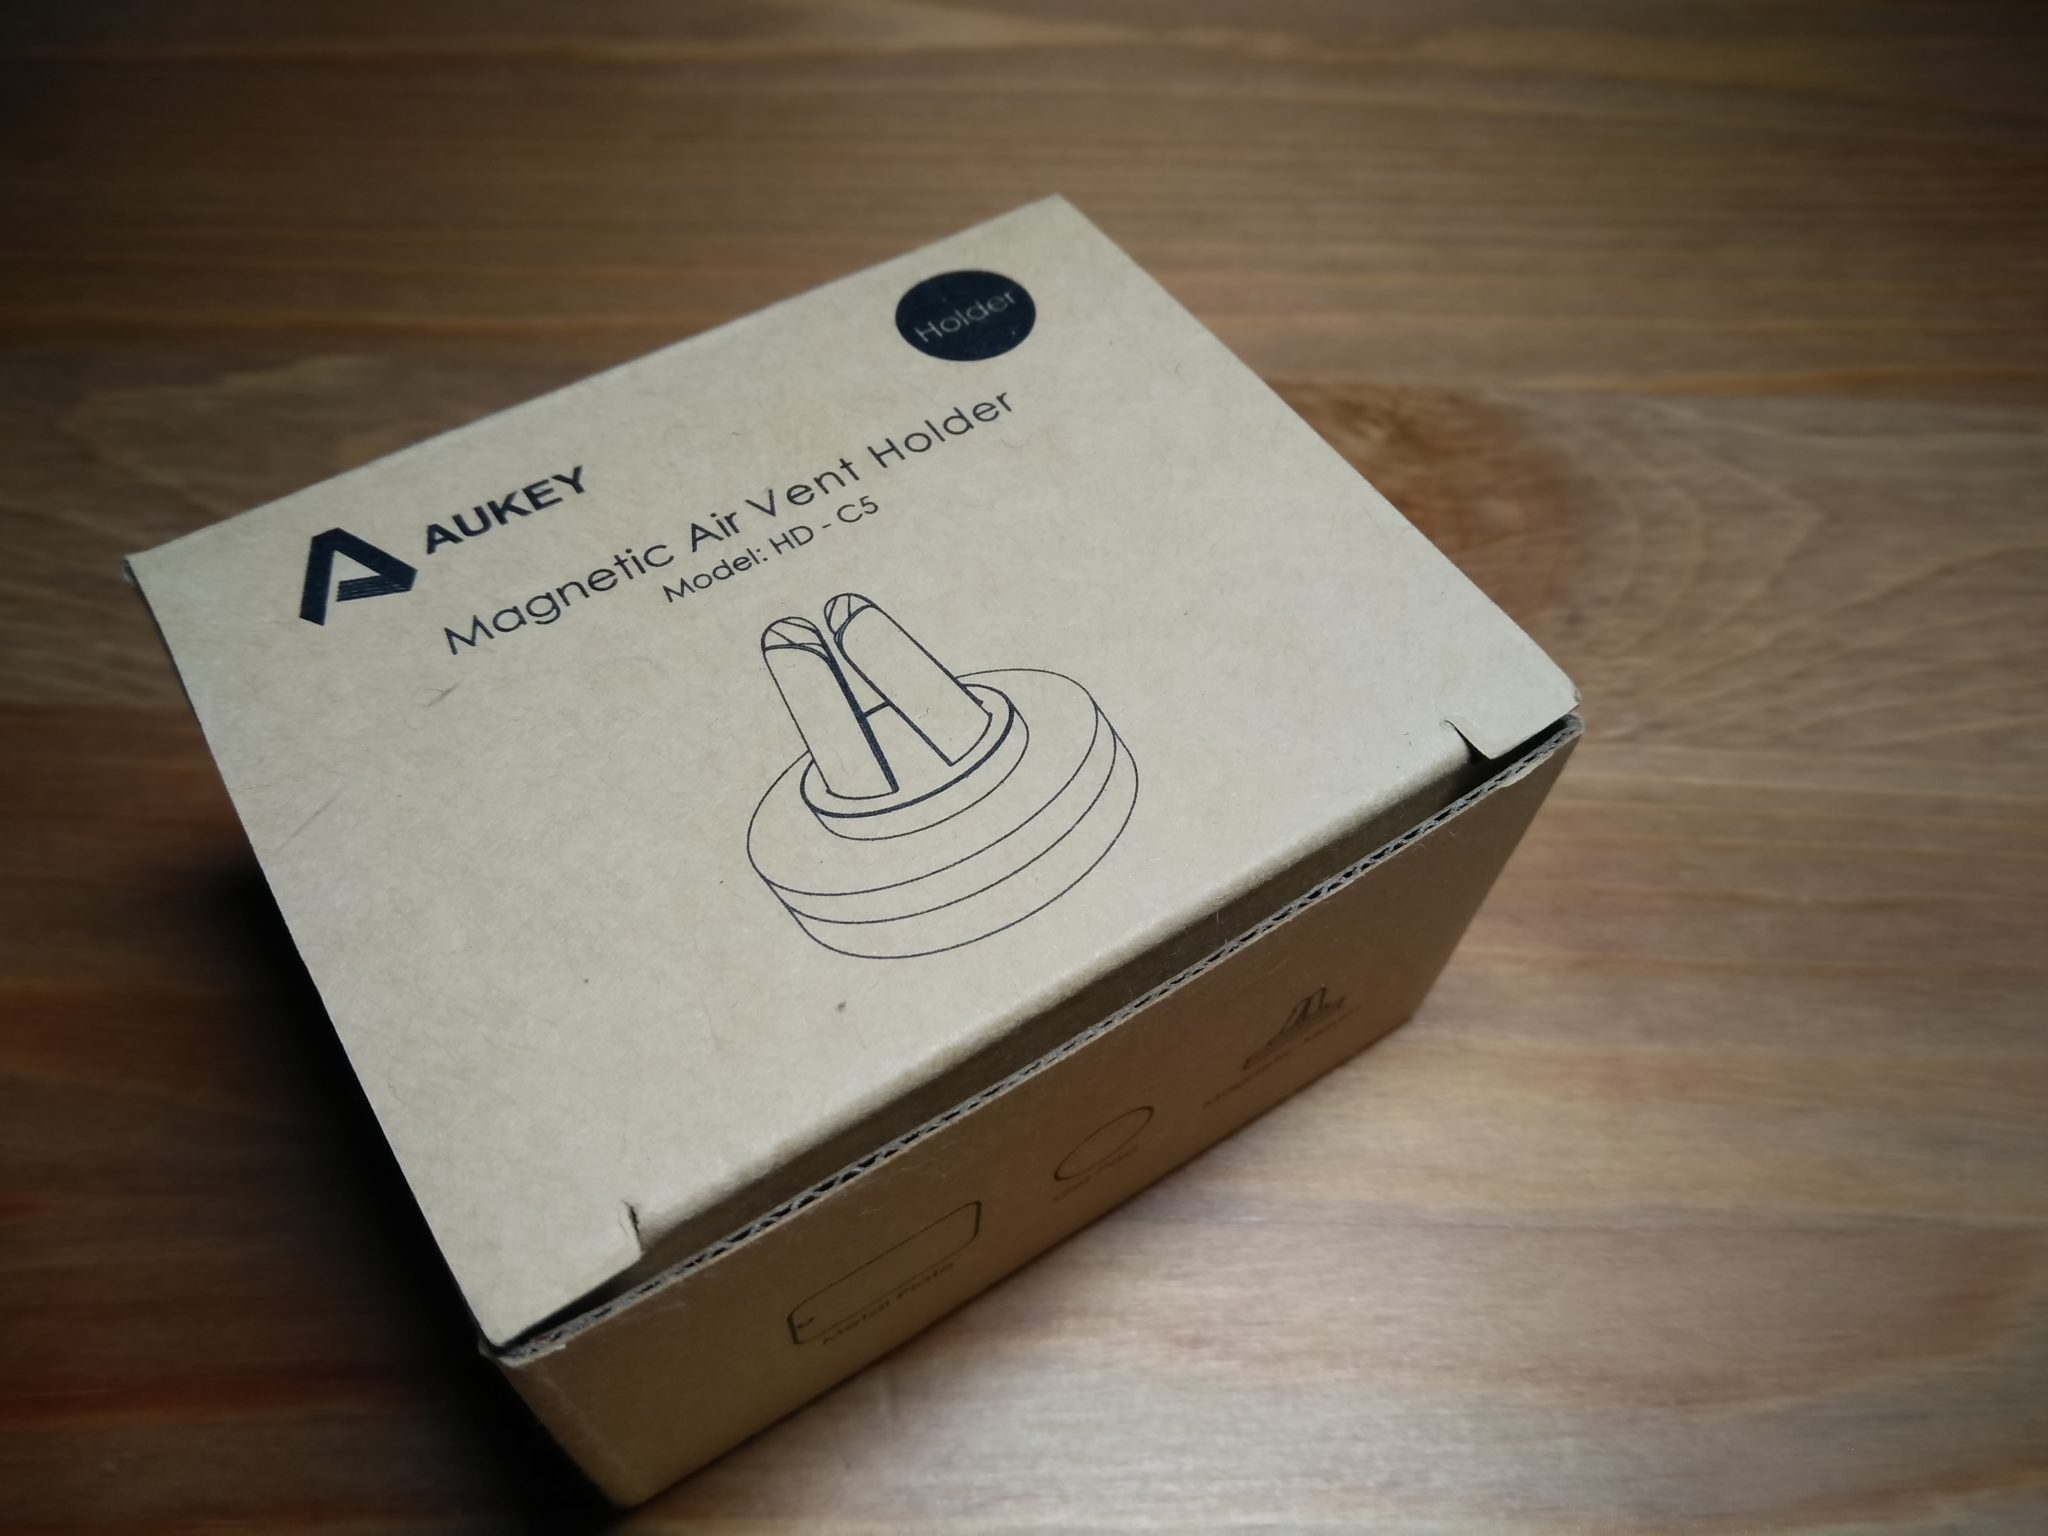 AUKEY HD-C5 Verpackung